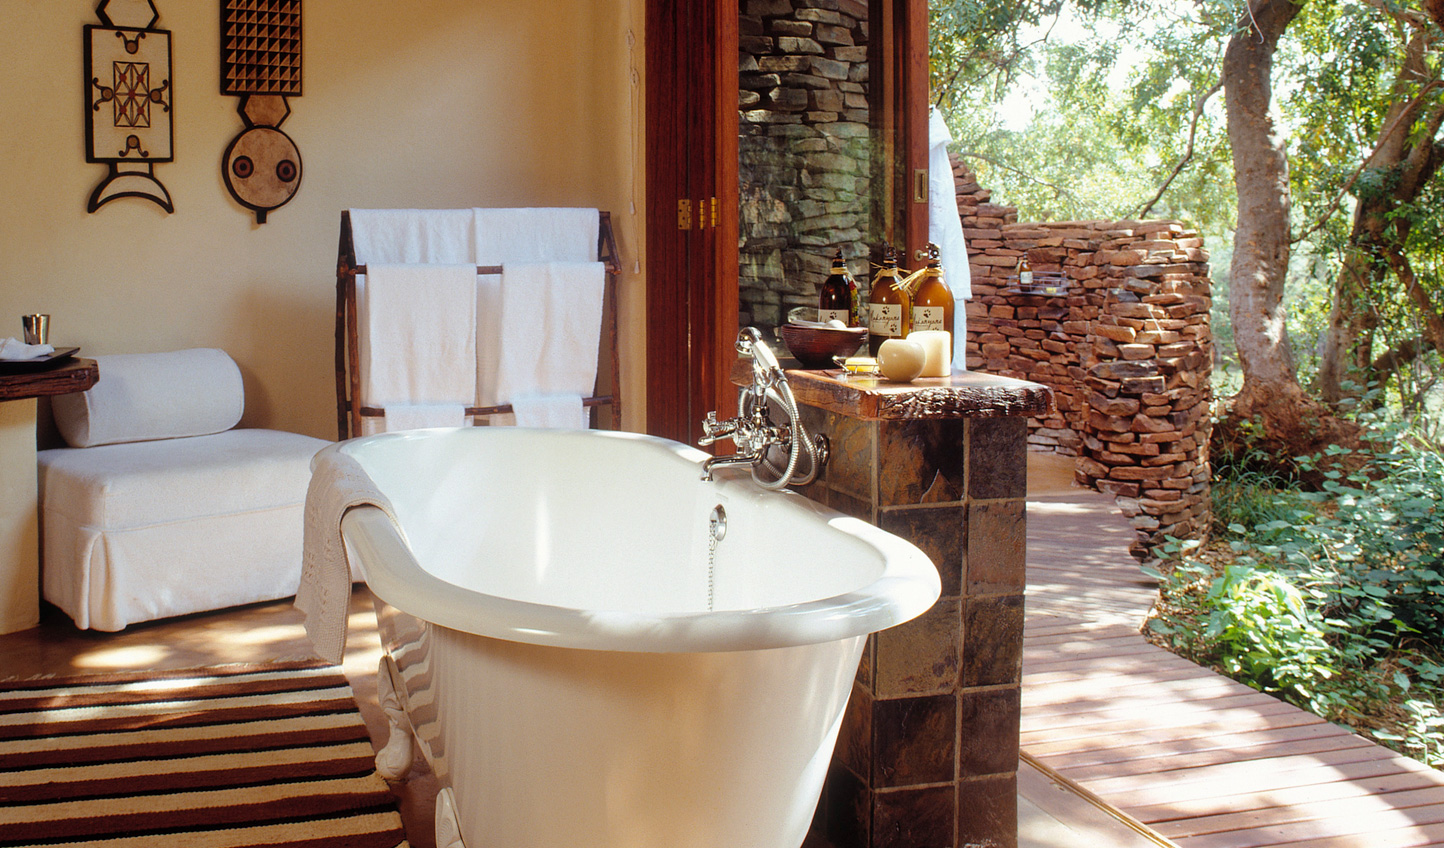 Slip into the tub and soak in your surroundings in the open bathrooms